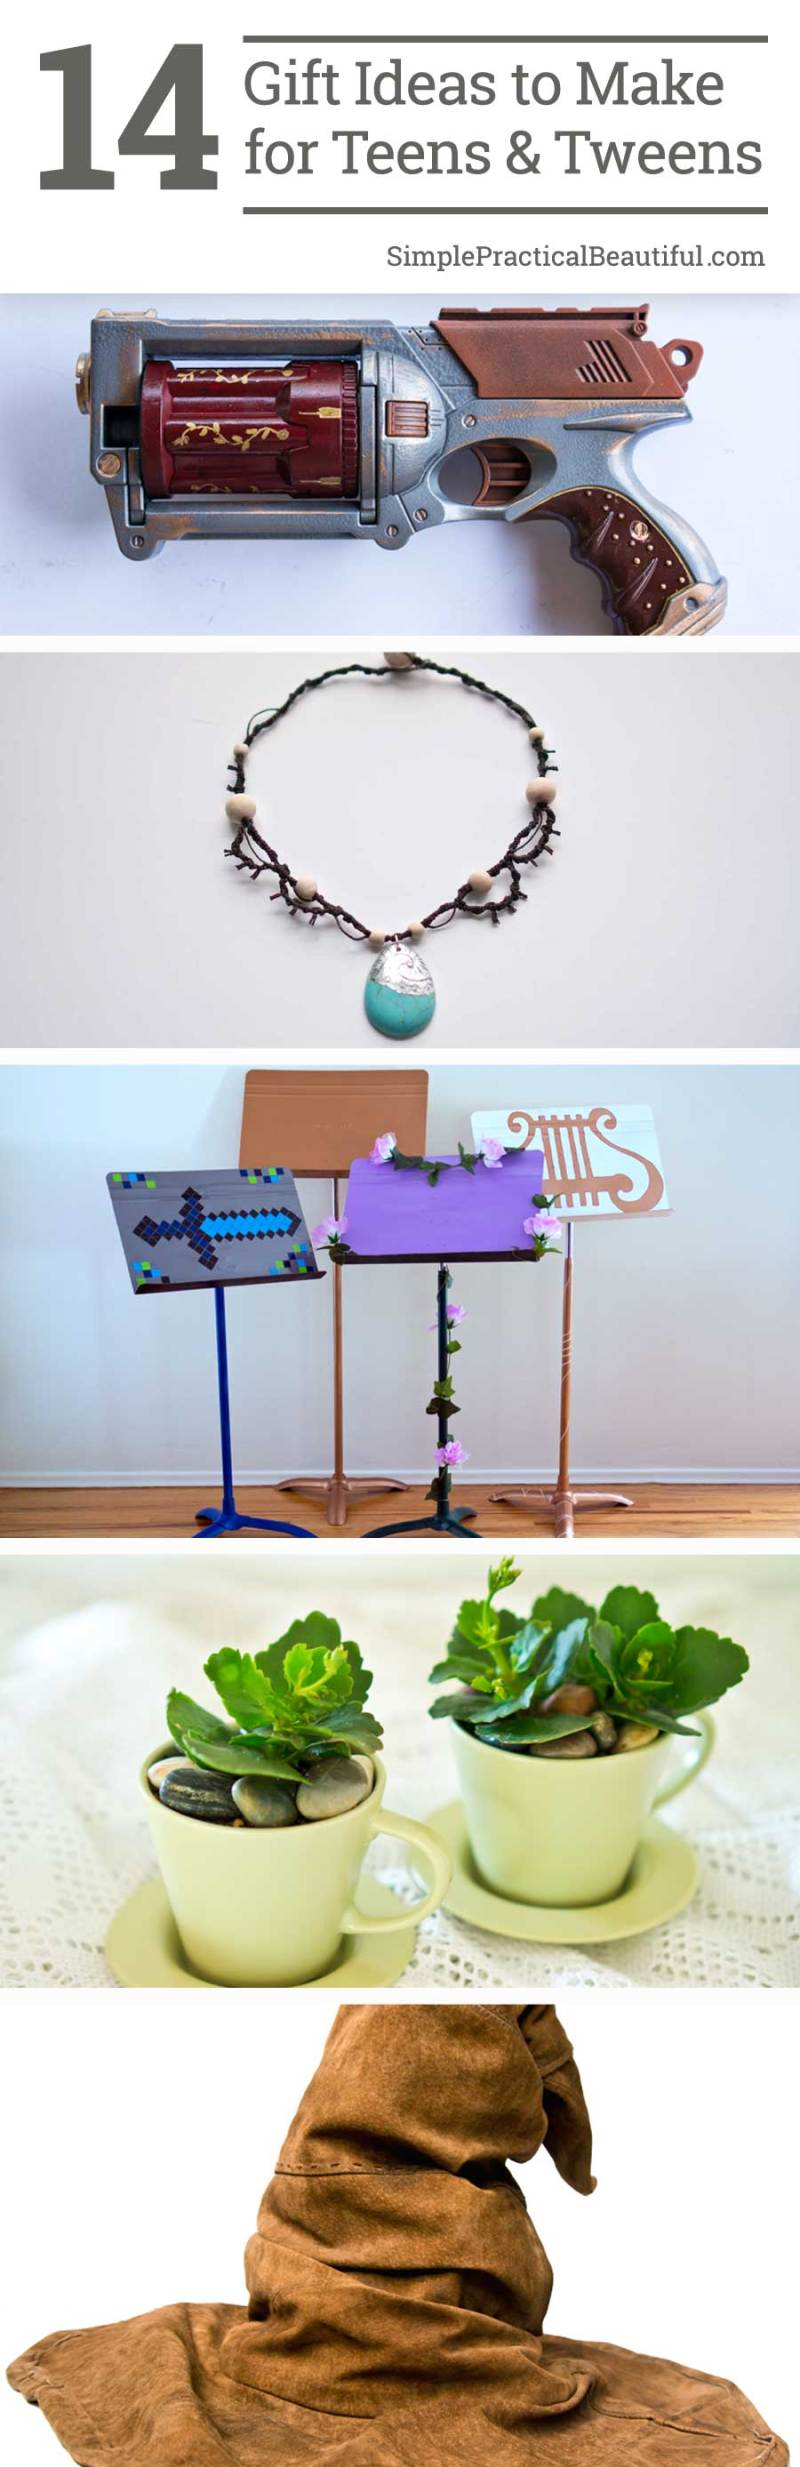 Lots of great DIY gift ideas to make for teen gifts or tween gifts